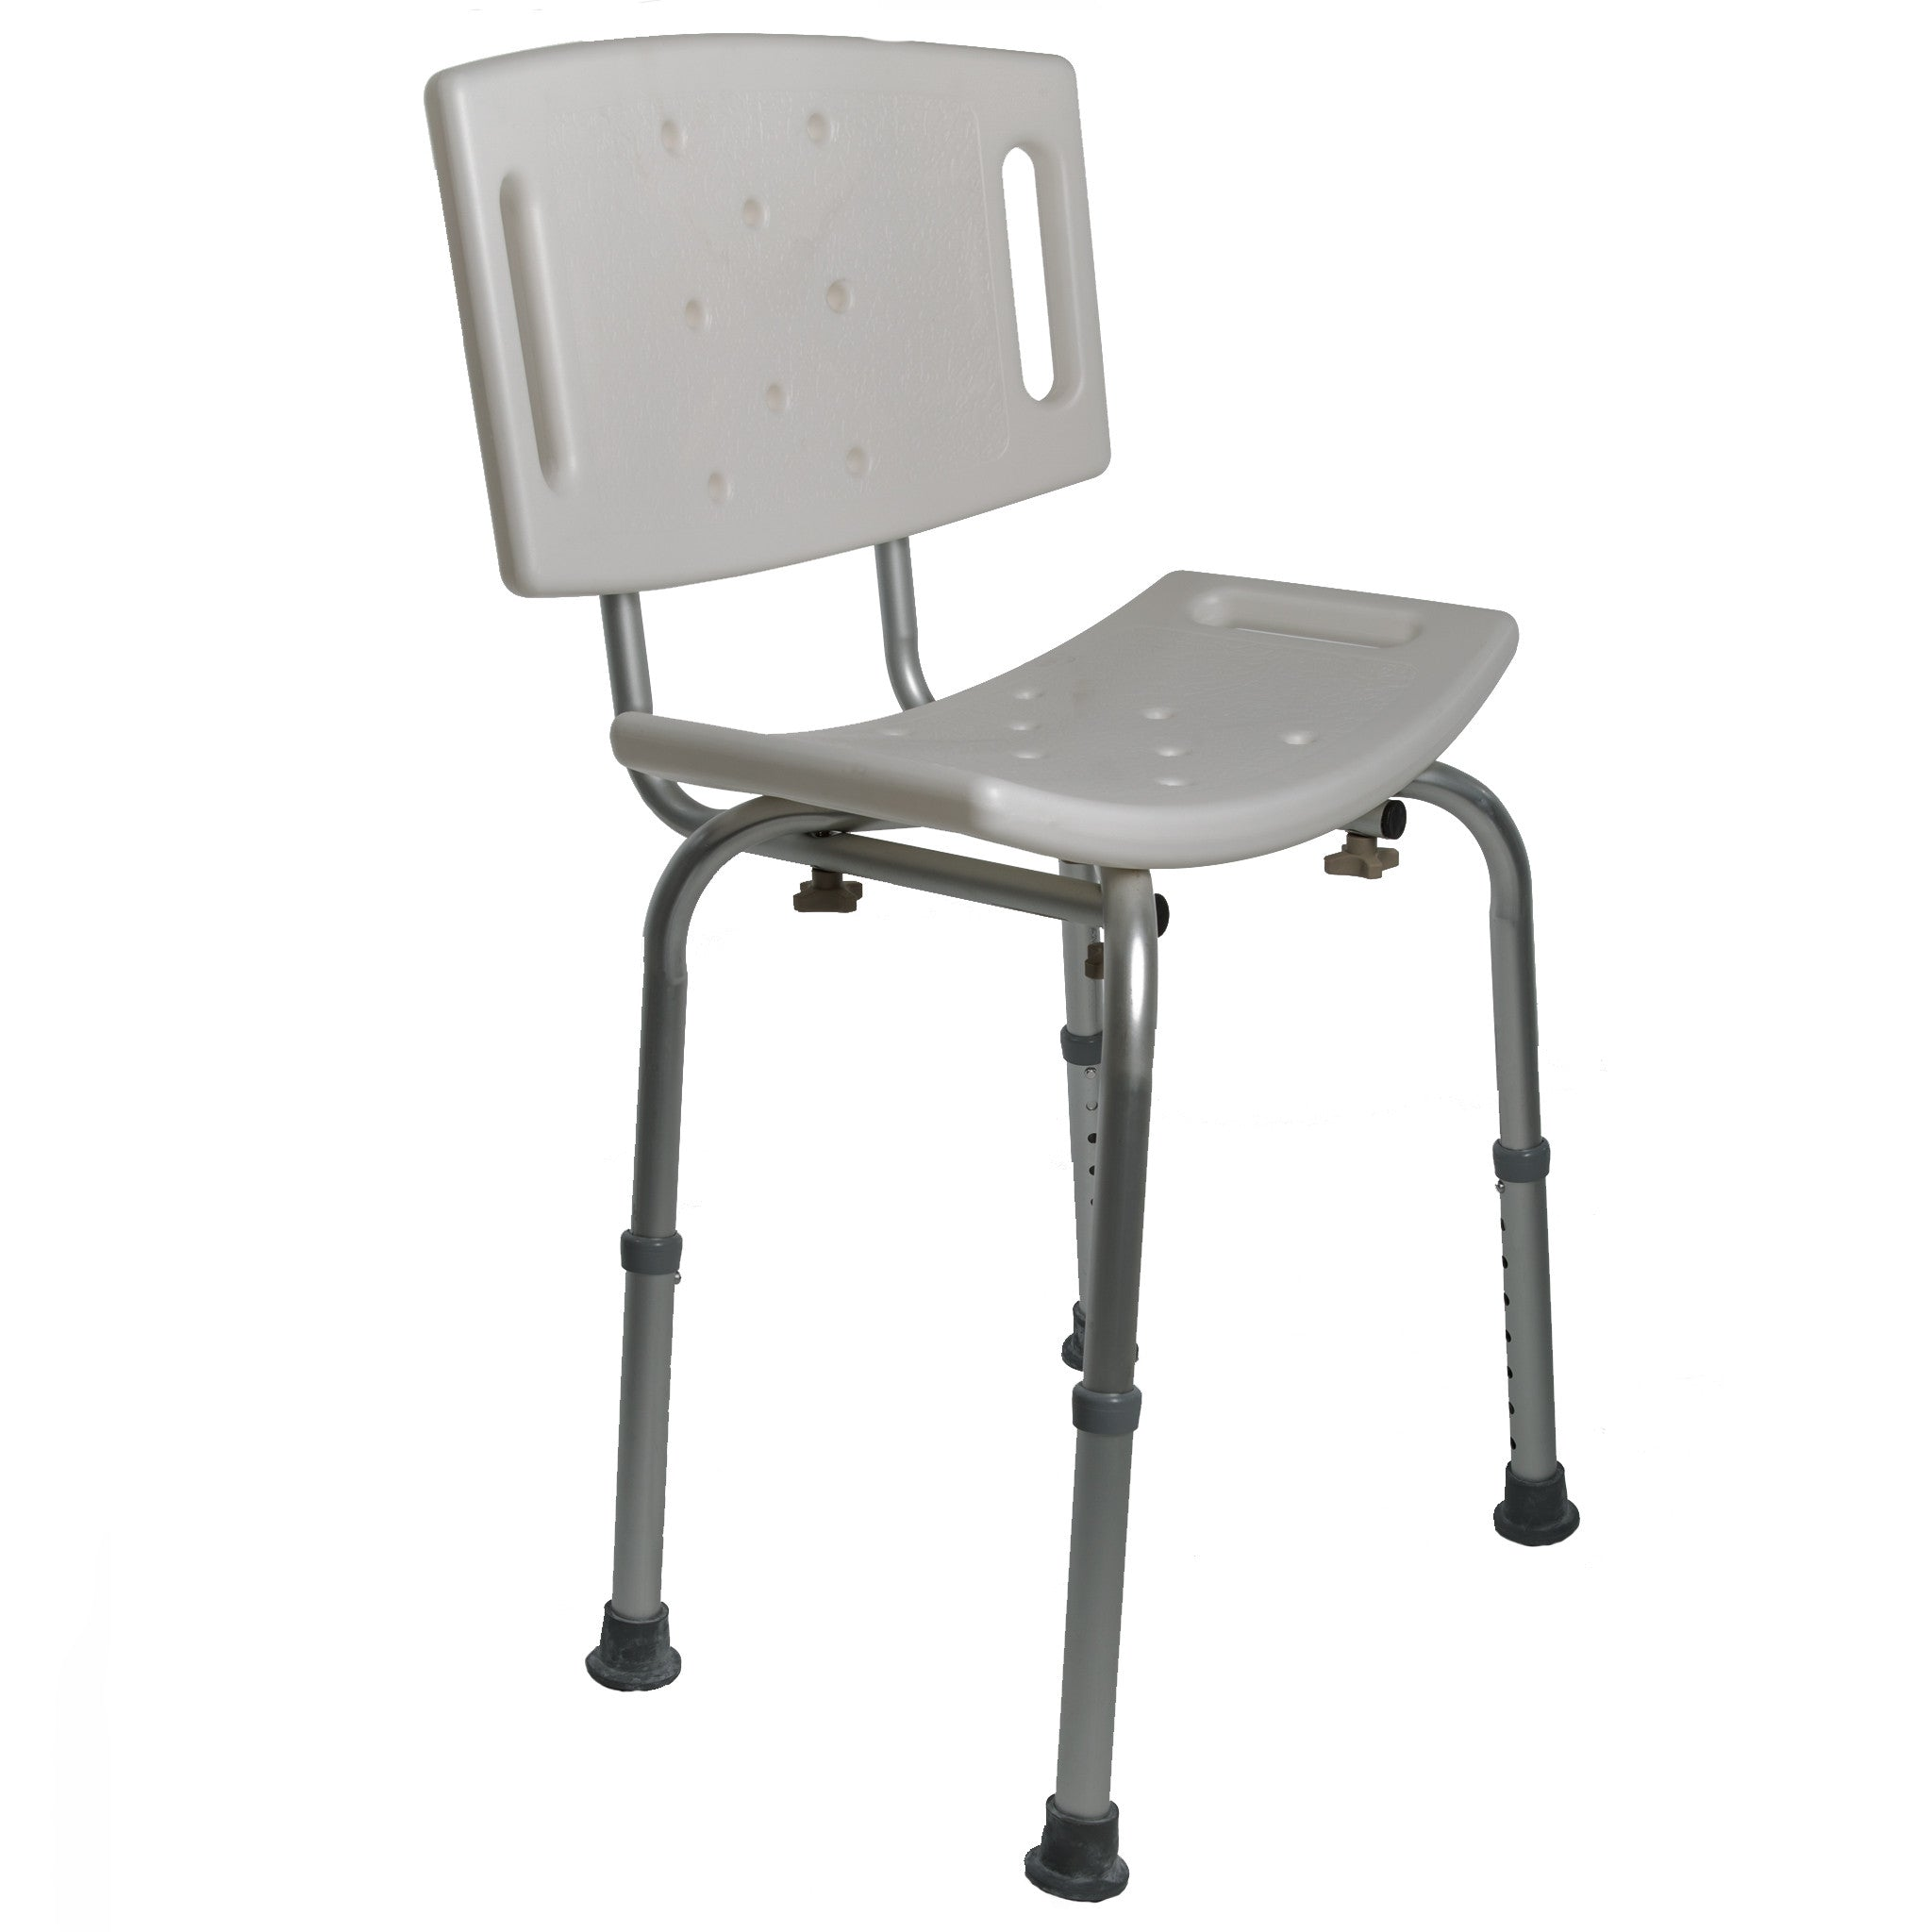 7003 Bath Safety Seat With Backrest Pcpmedical